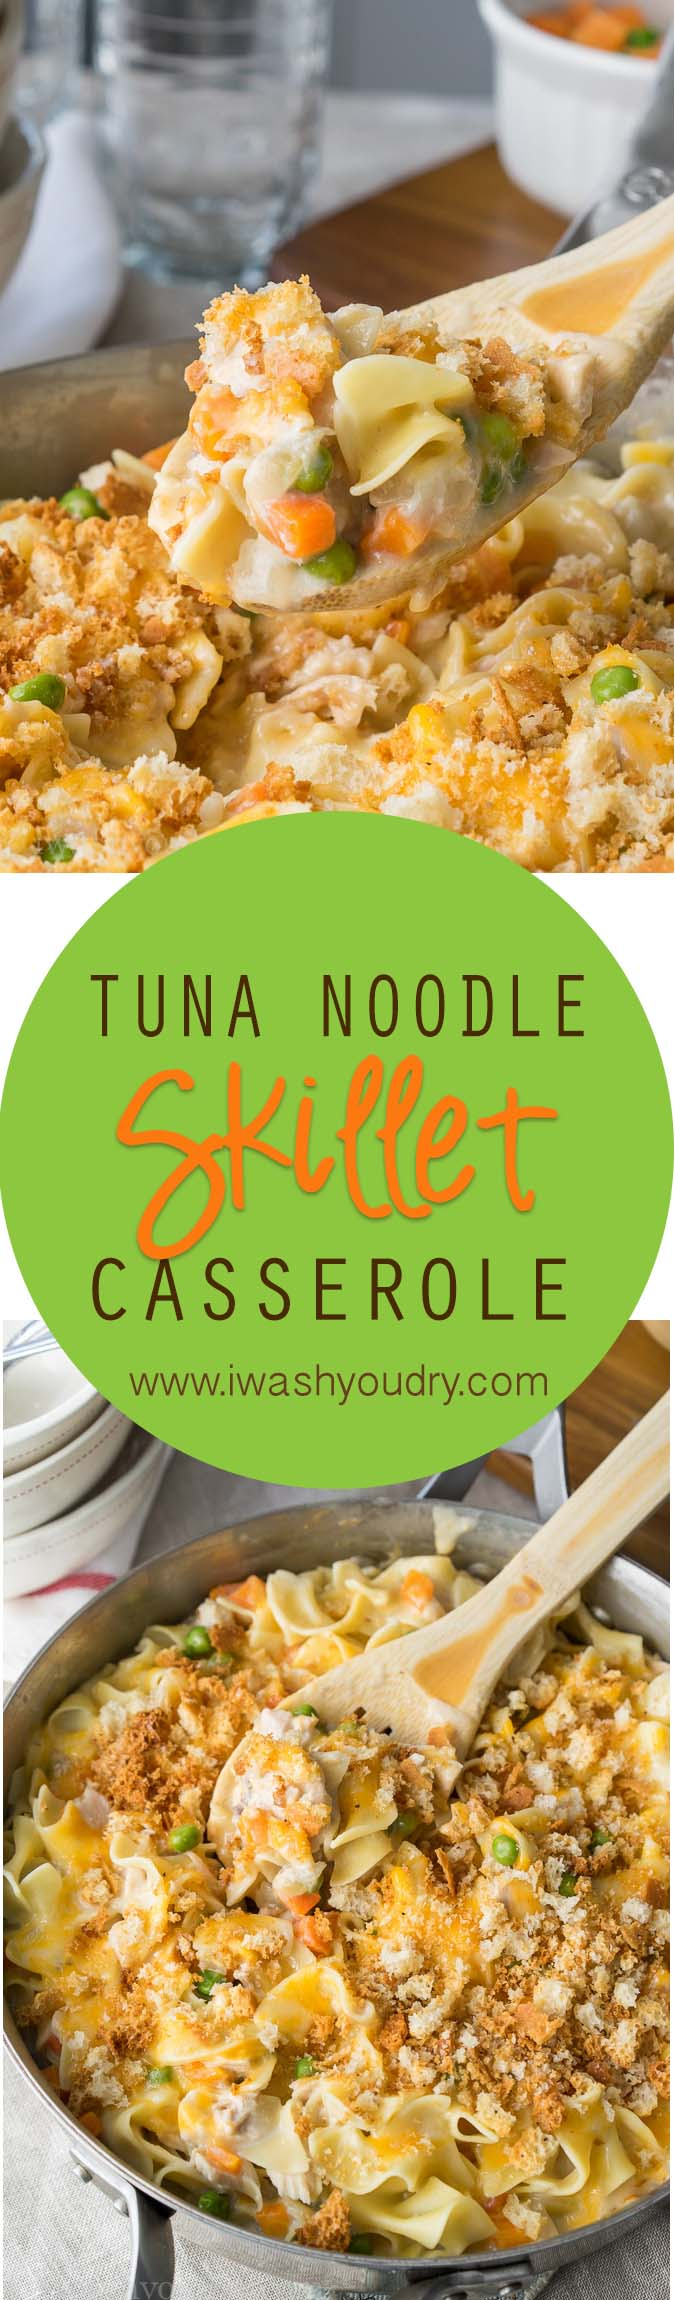 Mom's classic Tuna Noodle Casserole made better! Just ONE SKILLET!